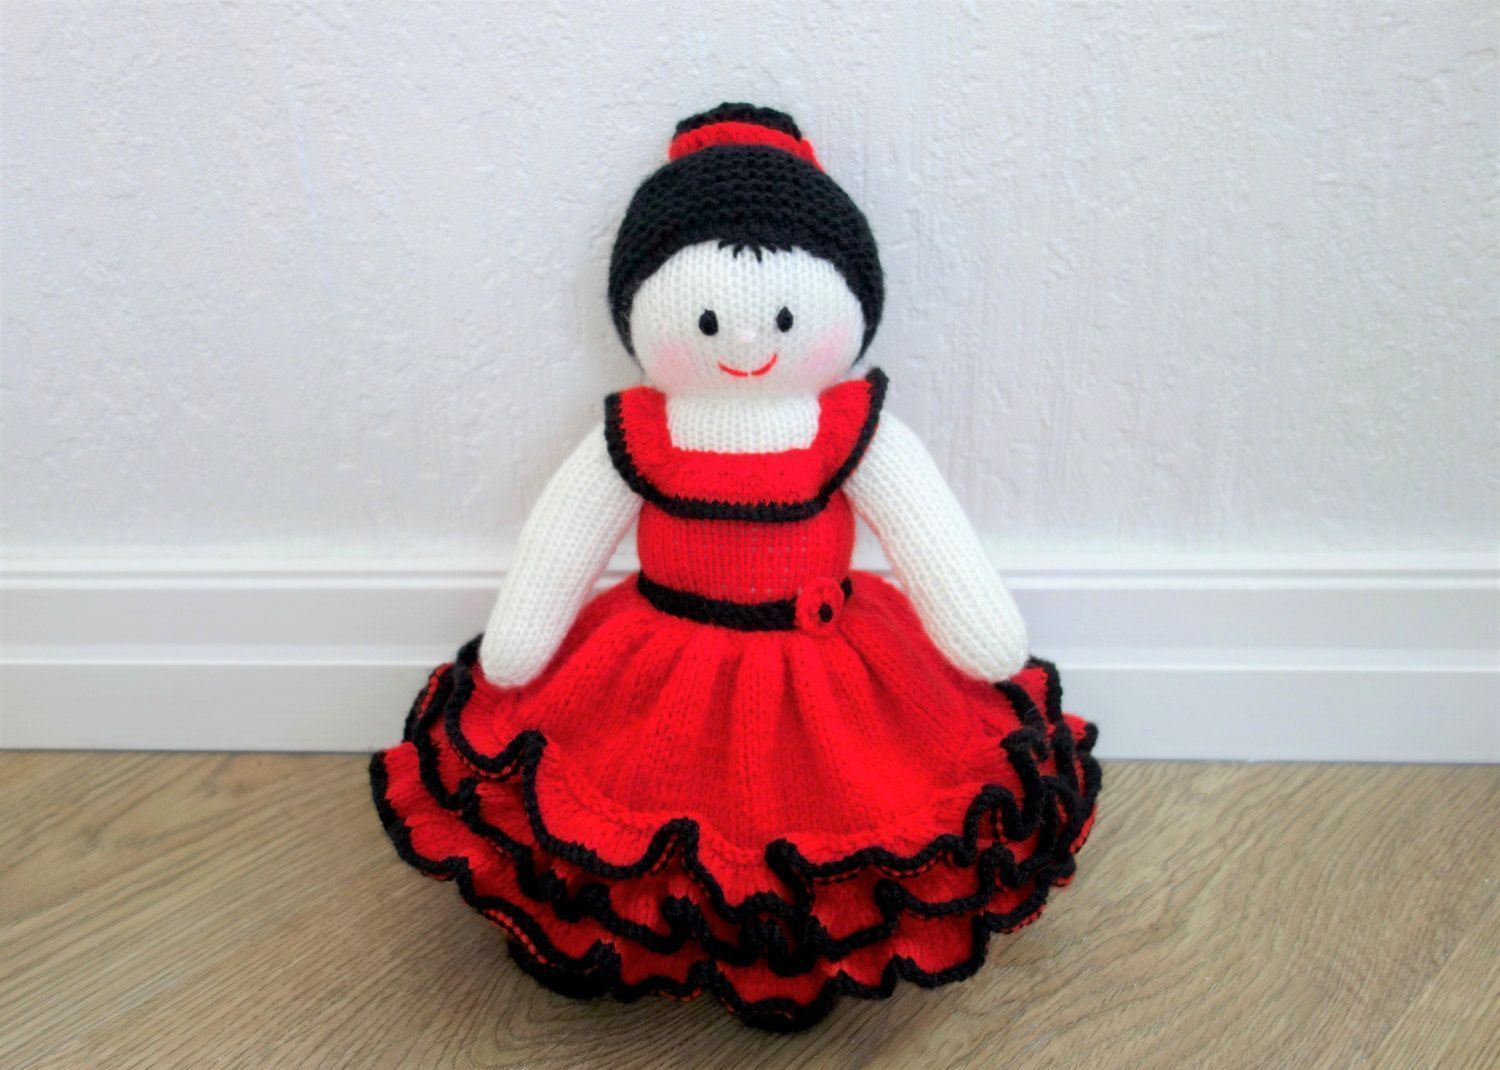 Knitted Flamenco Dancer Doll - Knit Spanish Doll - Spanish Dancer - Size 13 inches (MADE TO ORDER) #spanishdolls Knitted Flamenco Dancer Doll  Knit Spanish Doll   by Ewillknitting #spanishdolls Knitted Flamenco Dancer Doll - Knit Spanish Doll - Spanish Dancer - Size 13 inches (MADE TO ORDER) #spanishdolls Knitted Flamenco Dancer Doll  Knit Spanish Doll   by Ewillknitting #spanishdolls Knitted Flamenco Dancer Doll - Knit Spanish Doll - Spanish Dancer - Size 13 inches (MADE TO ORDER) #spanishdolls #spanishdolls